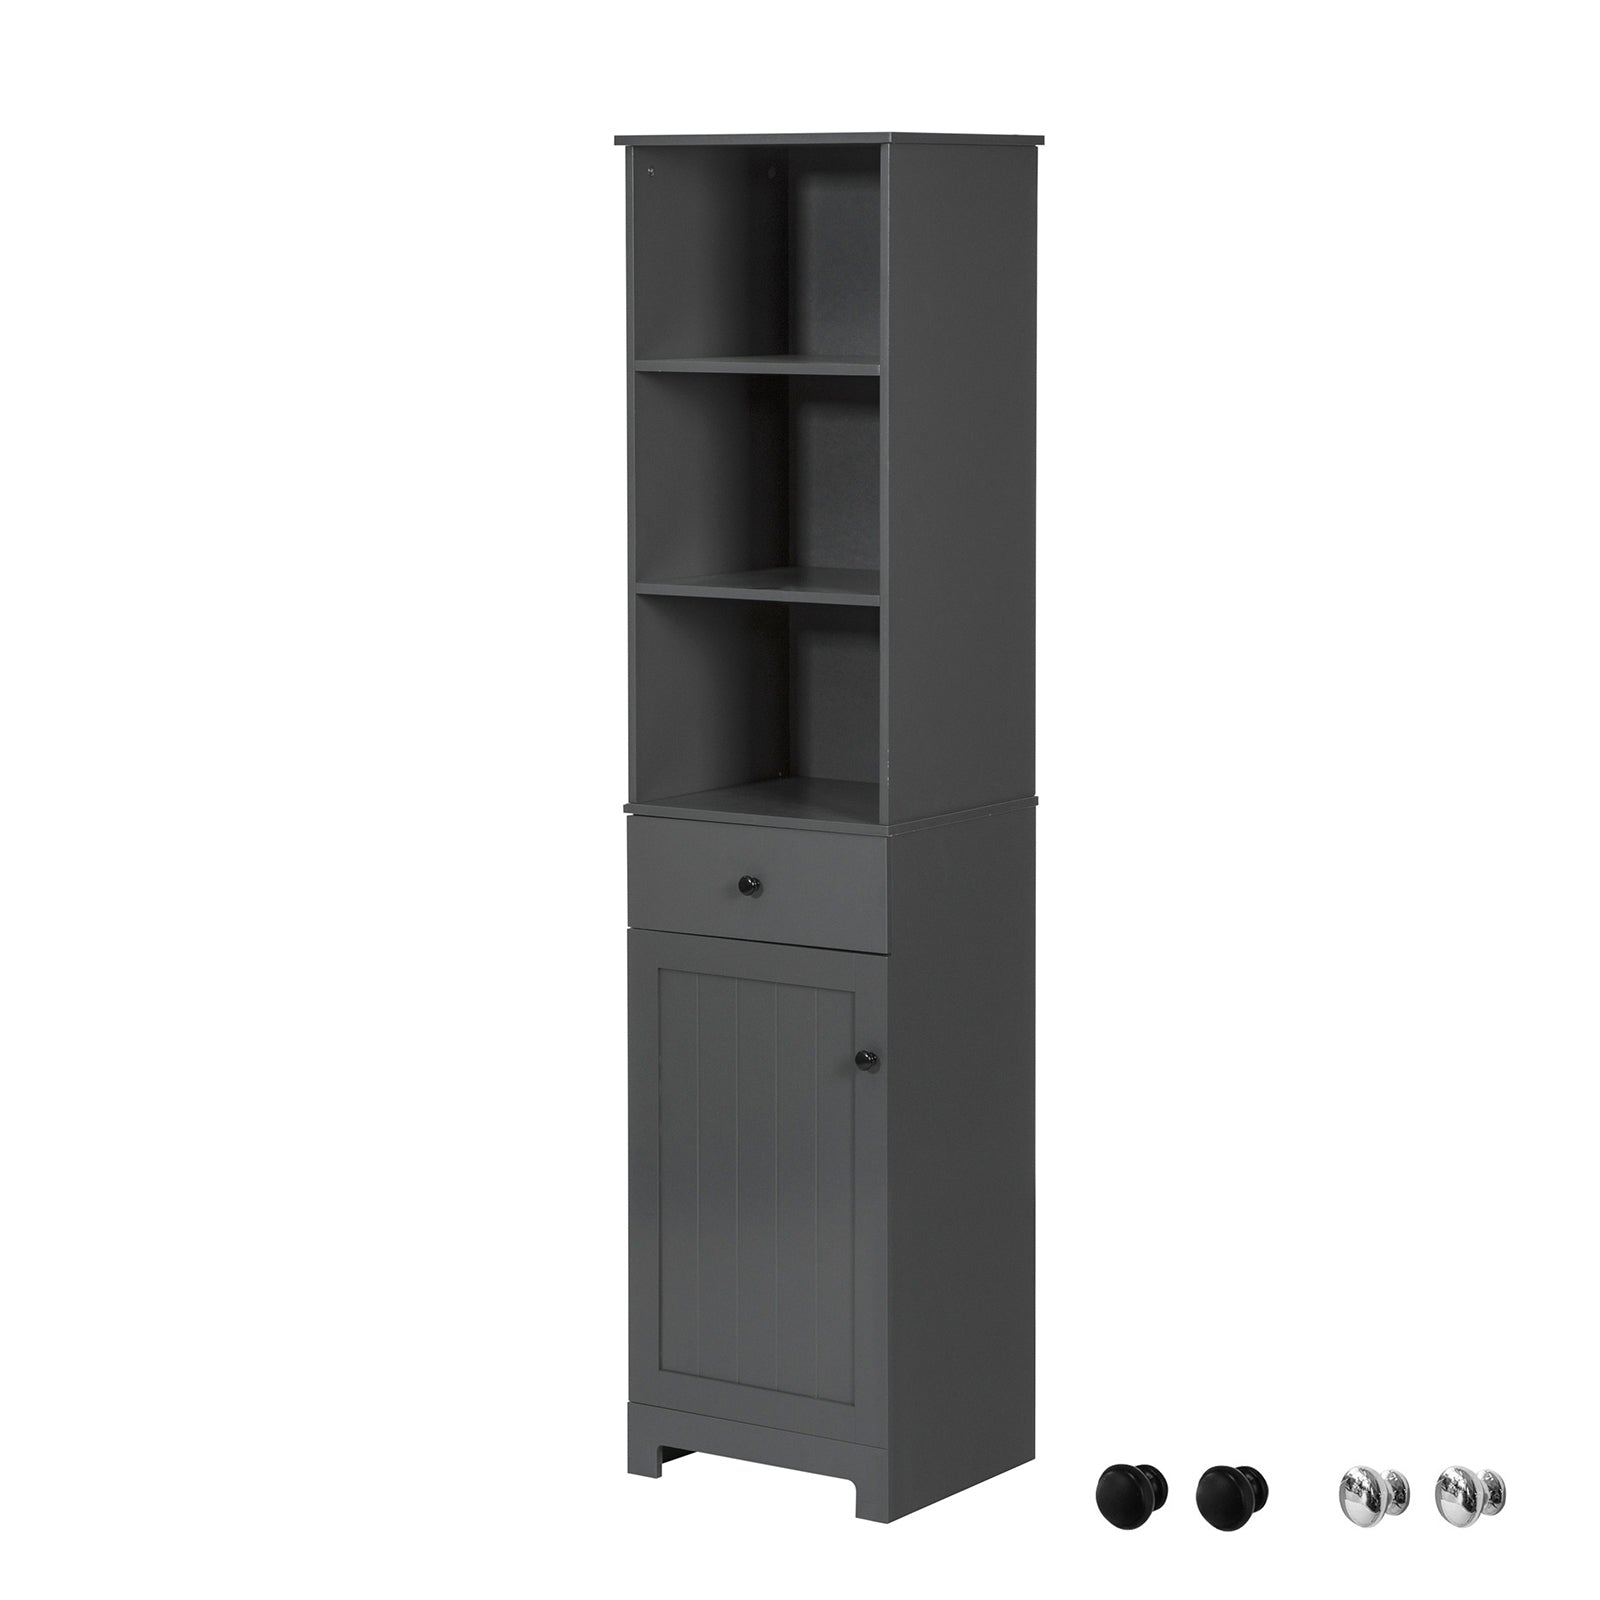 SoBuy Tall Cabinet Space Saving Bathroom with Drawer and Cabinet, Industrial Style, BZR17-DG